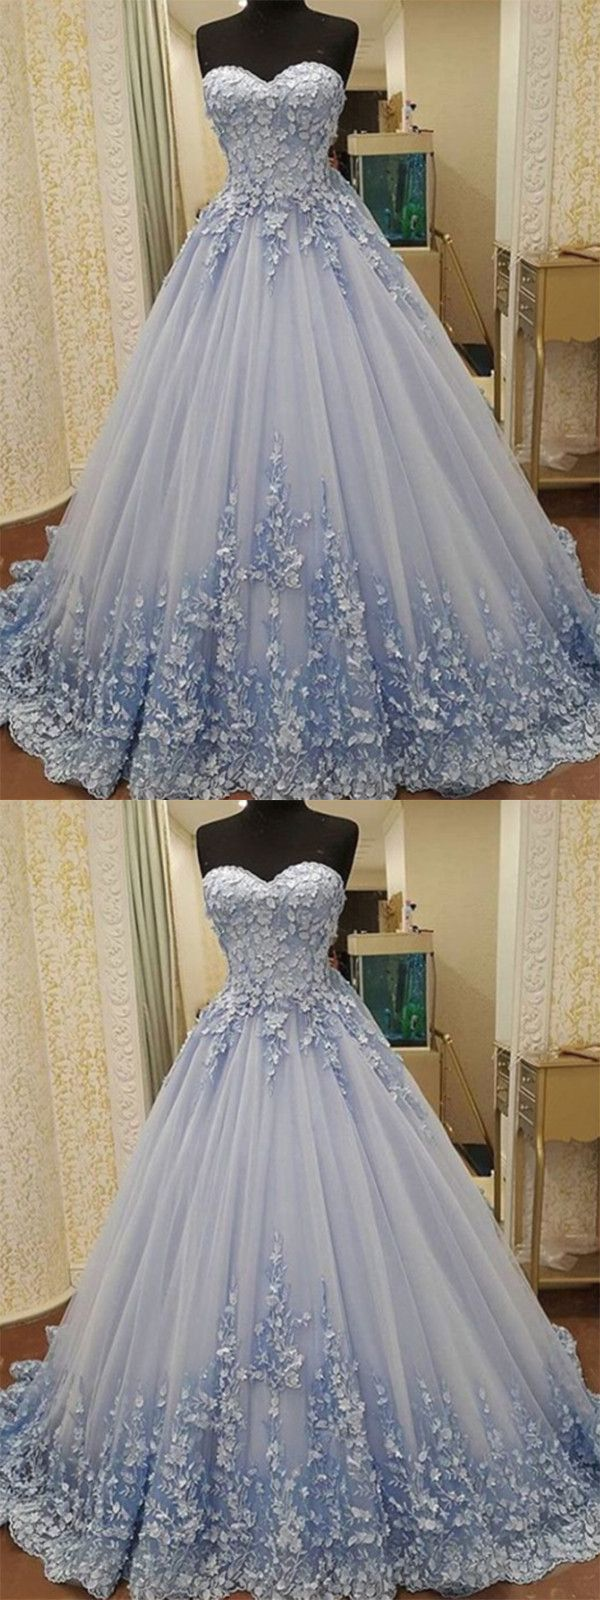 Vintage ball gown prom dress african lace long prom dress vb